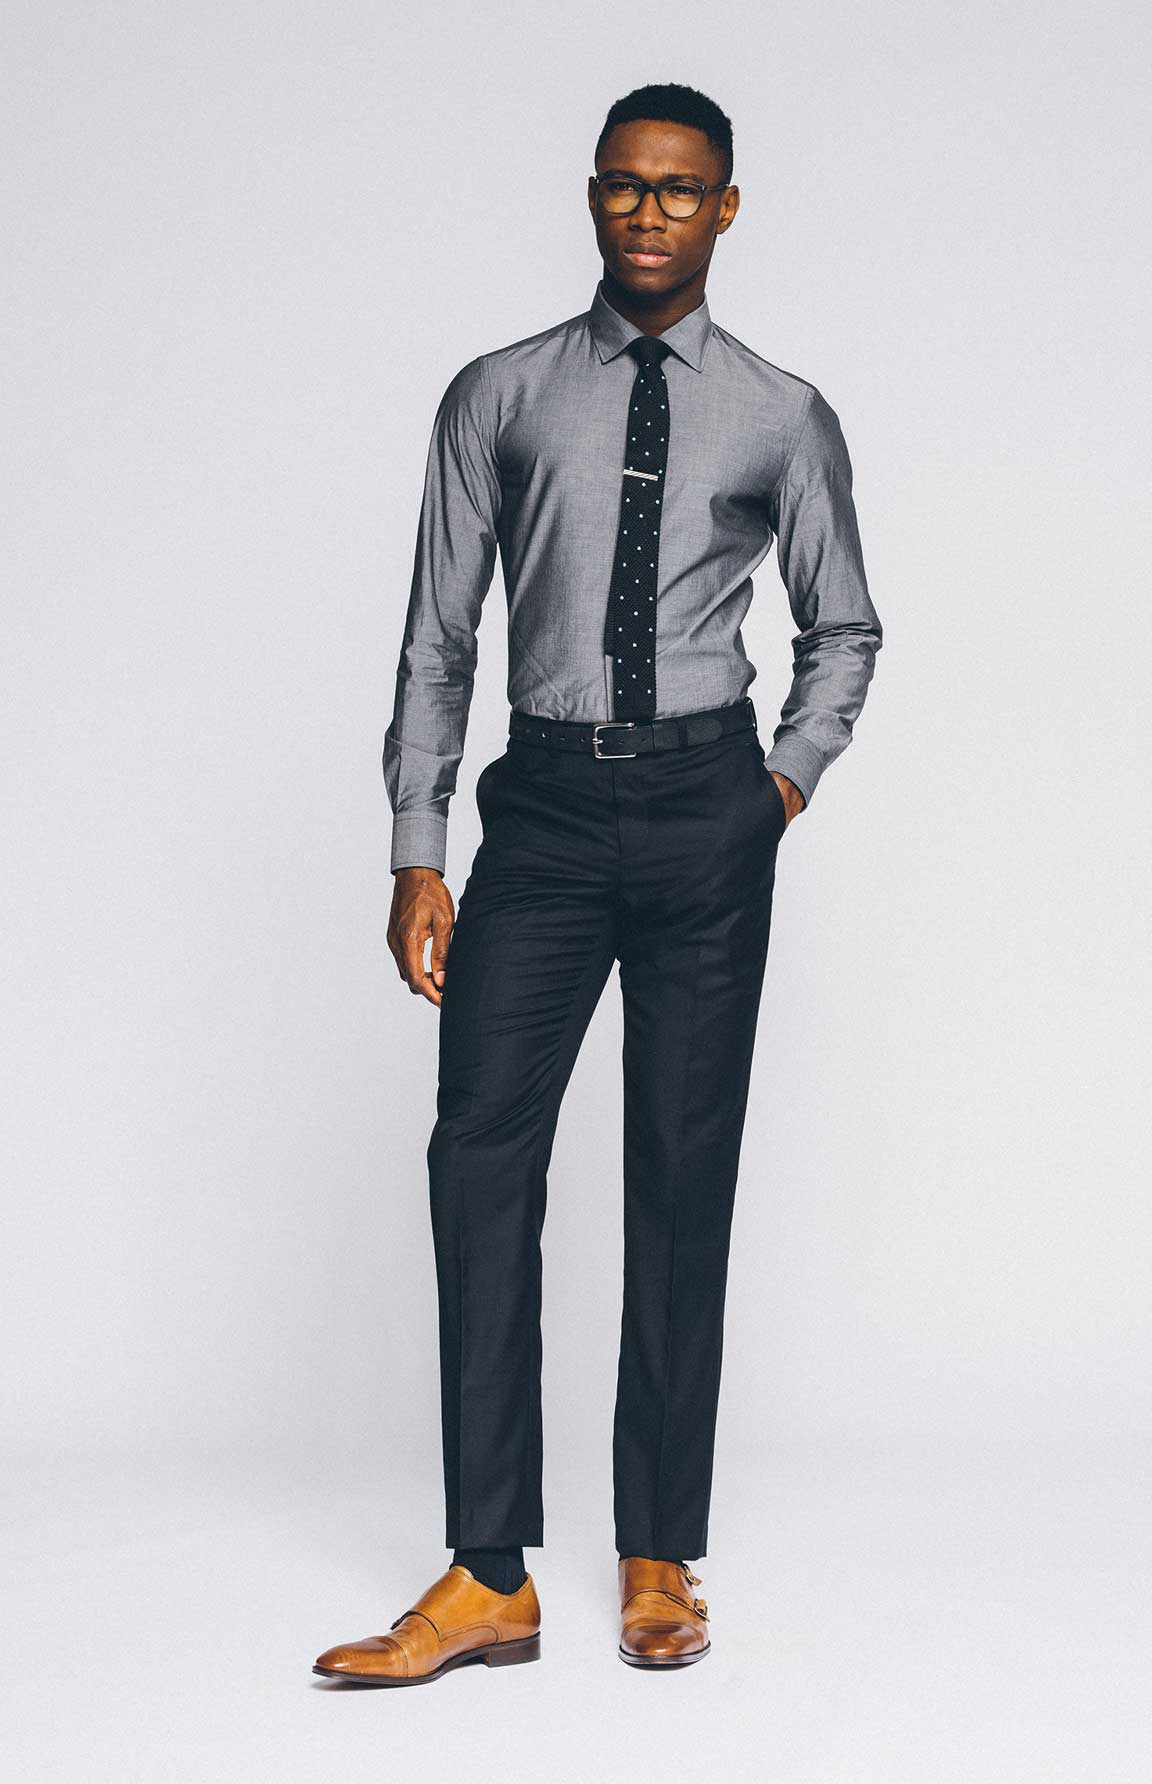 Can Black Dress Shoes Be Worn With A Brown Belt